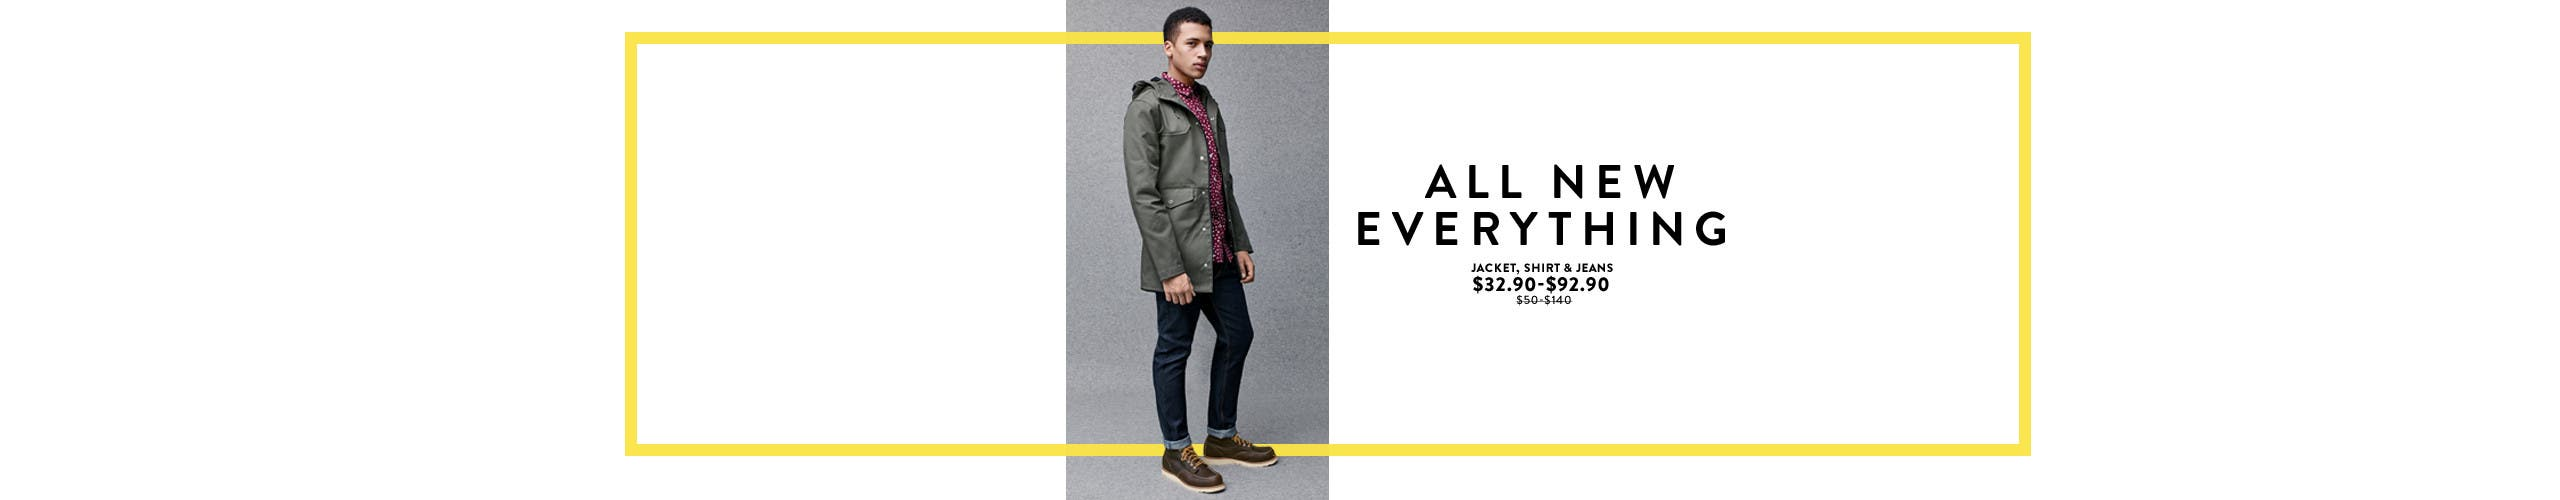 All-new everything: clothing from Topman.